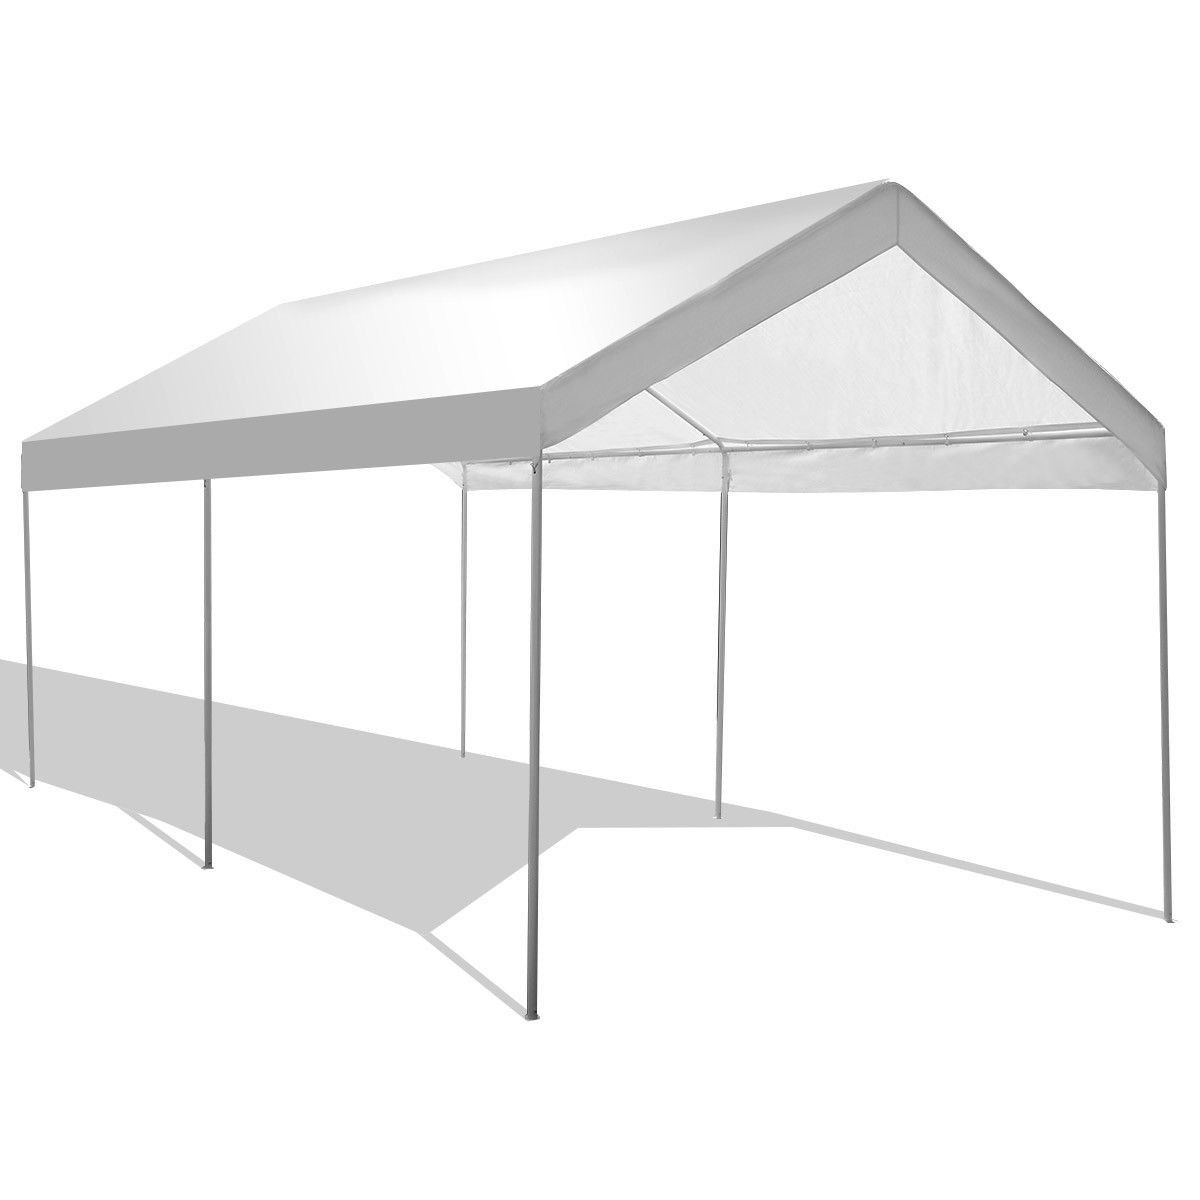 10 X 20 Steel Frame Portable Car Canopy Shelter With Images